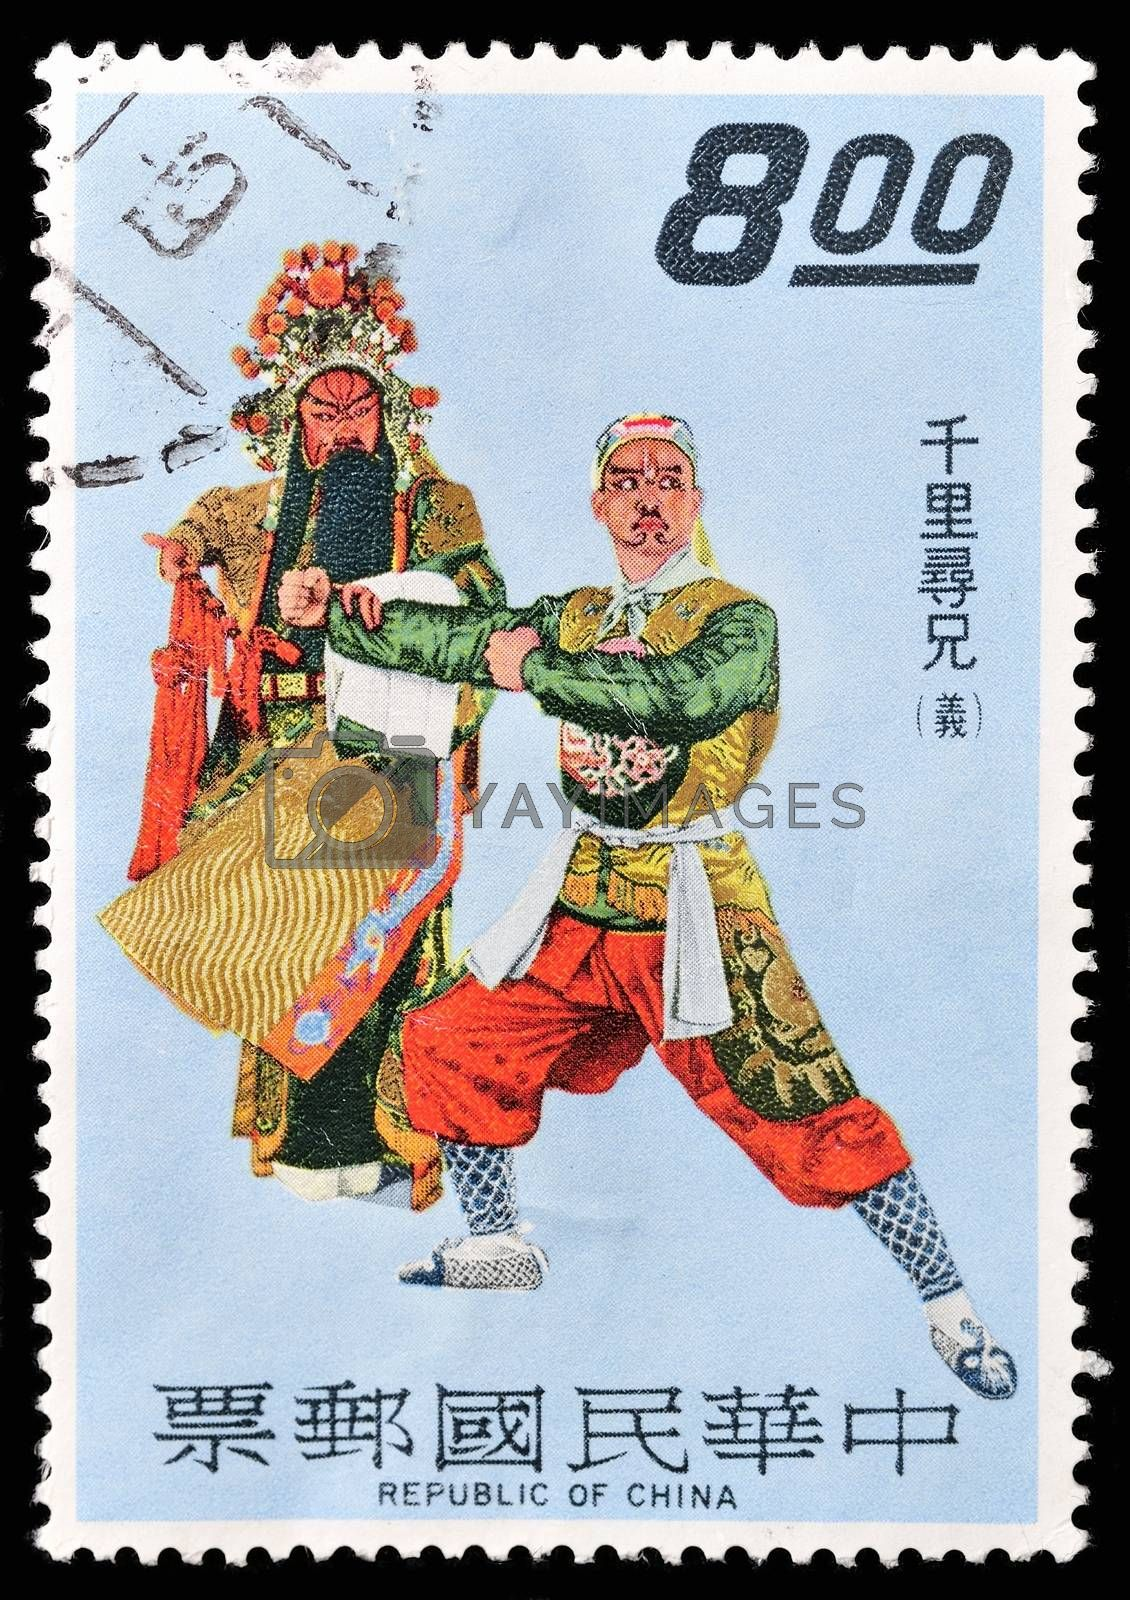 CHINA- CIRCA 1962. A stamp printed in China depicting traditional wear for men, circa 1962